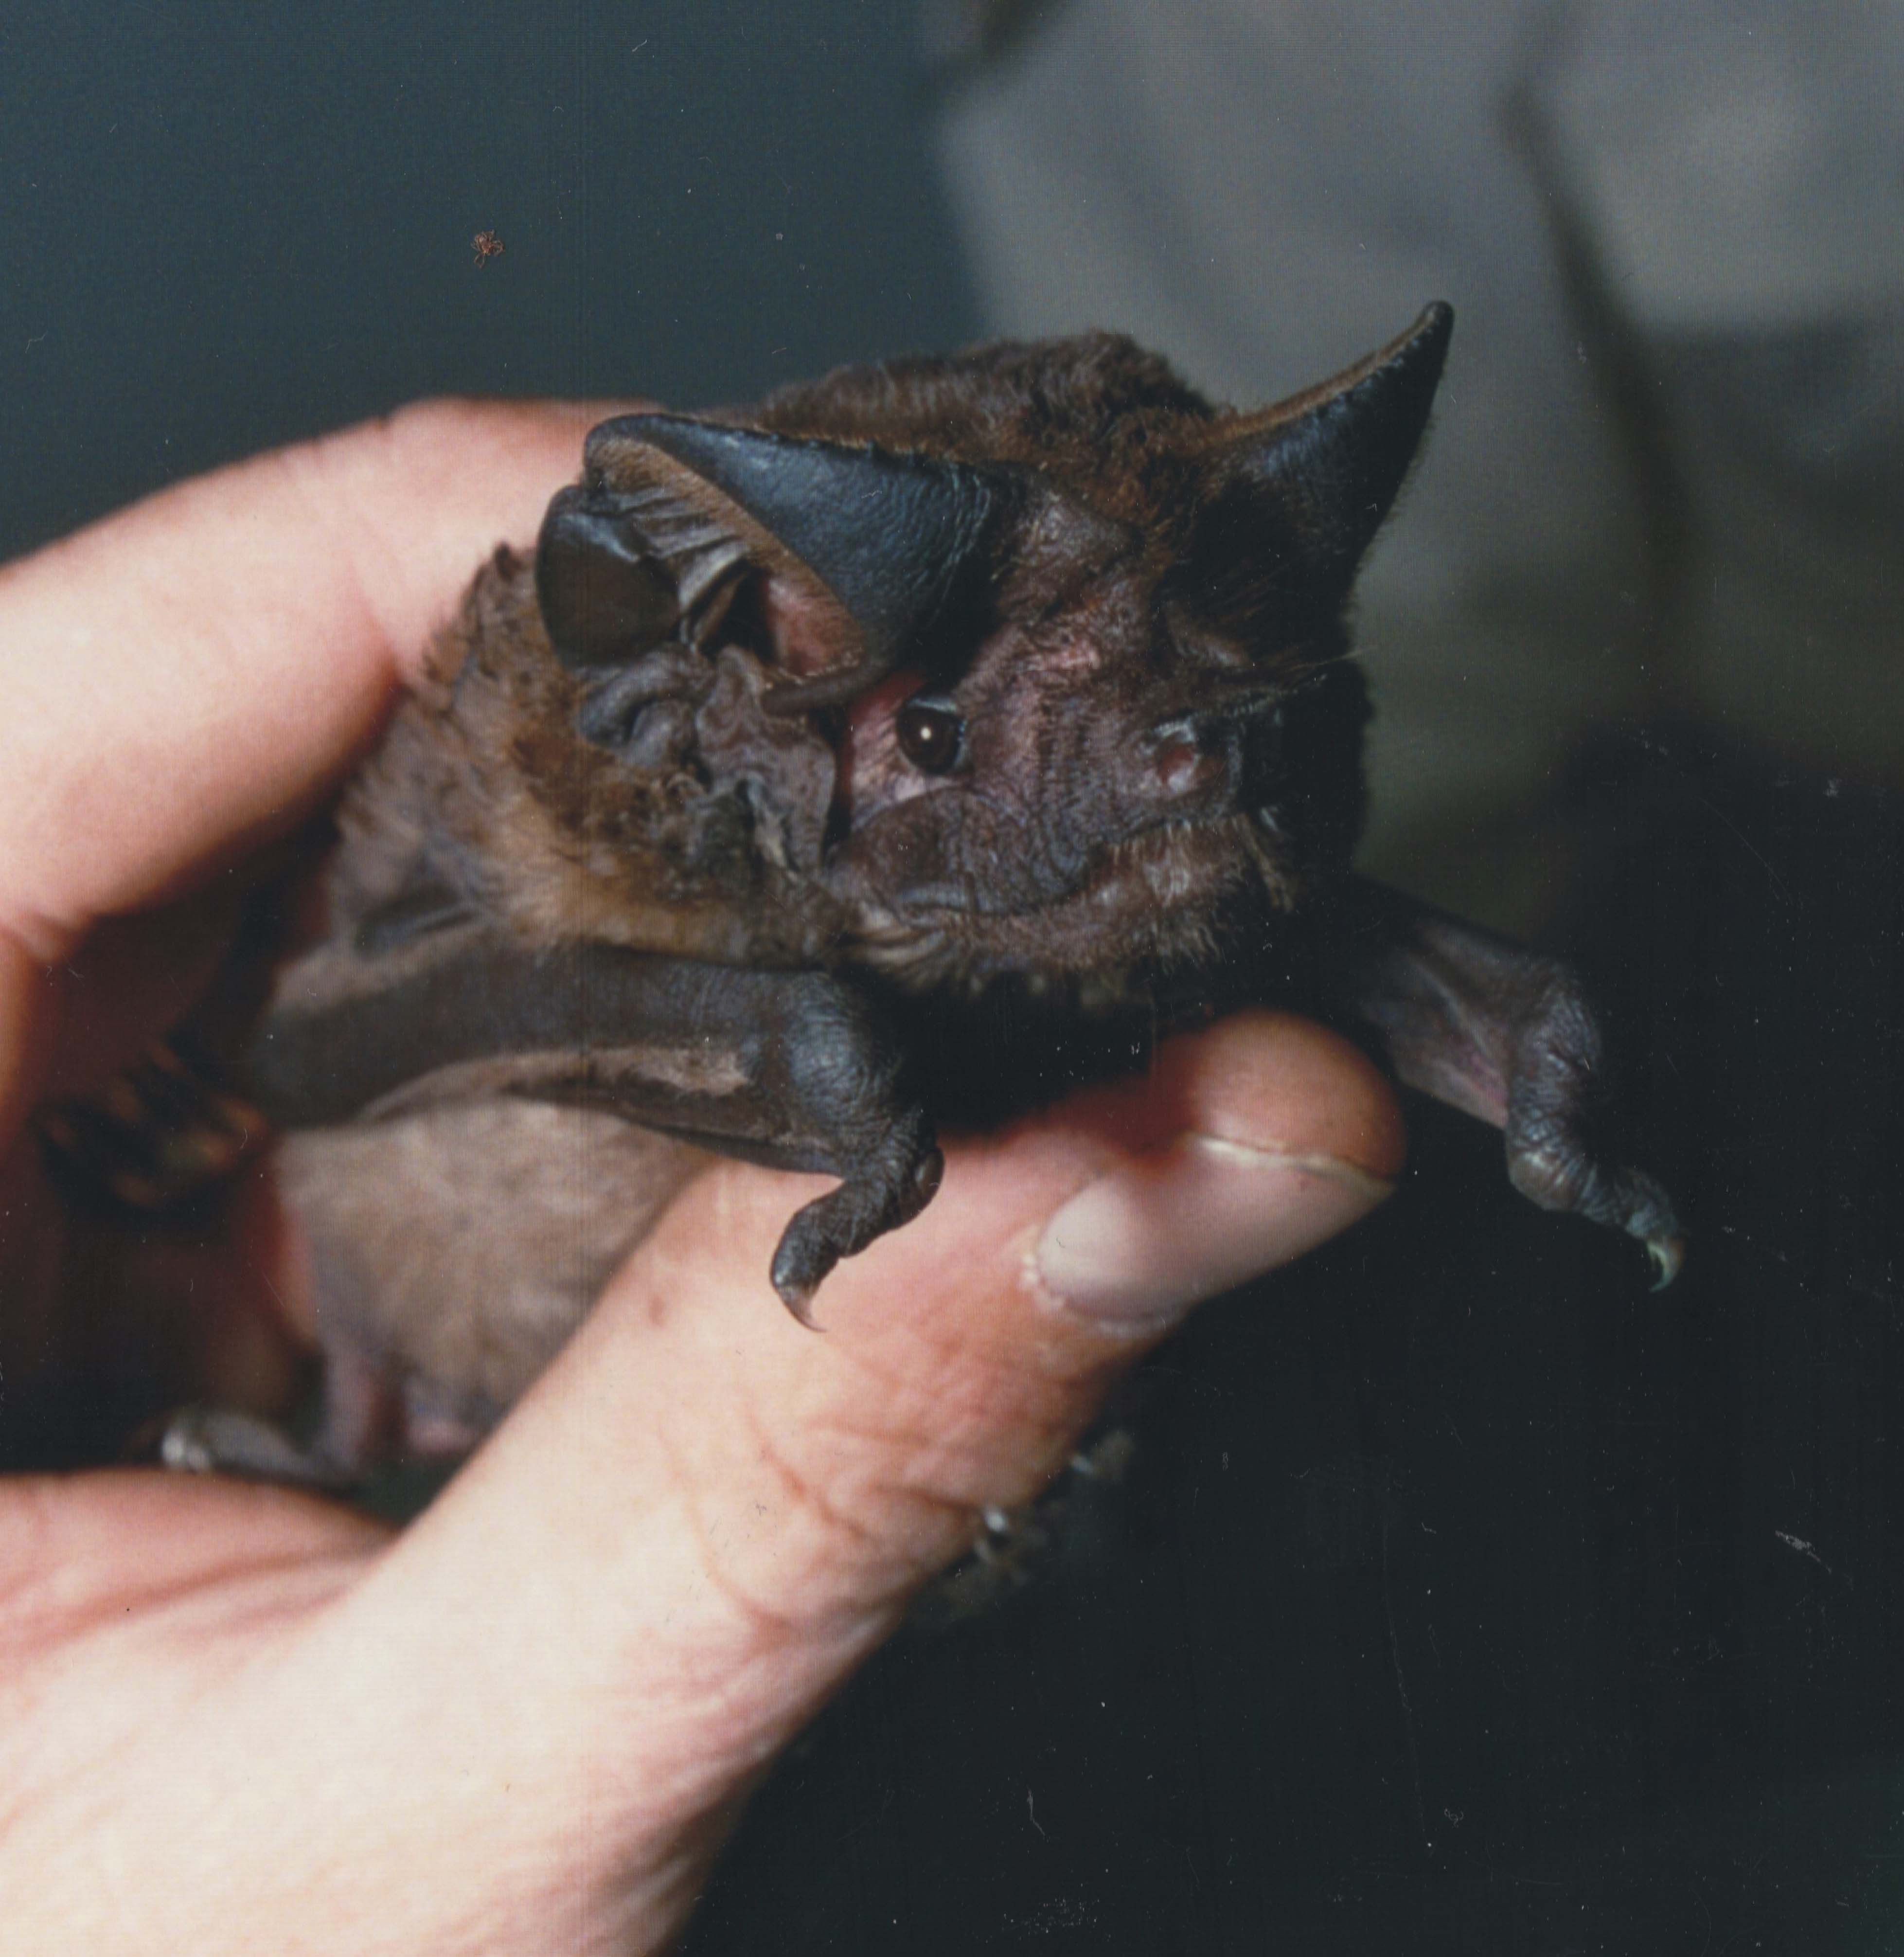 The White-striped freetail bat is one of up to nine species of microbats using the bushland areas in Yarra for food, shelter and breeding. It is the only microbat with an echolocation call that is audible to humans.  Microbats are prolific insect eaters, consuming up to 33% of their body weight per night, therefore they play a very important role in controlling insect populations, and maintaining eco-system equilibrium.